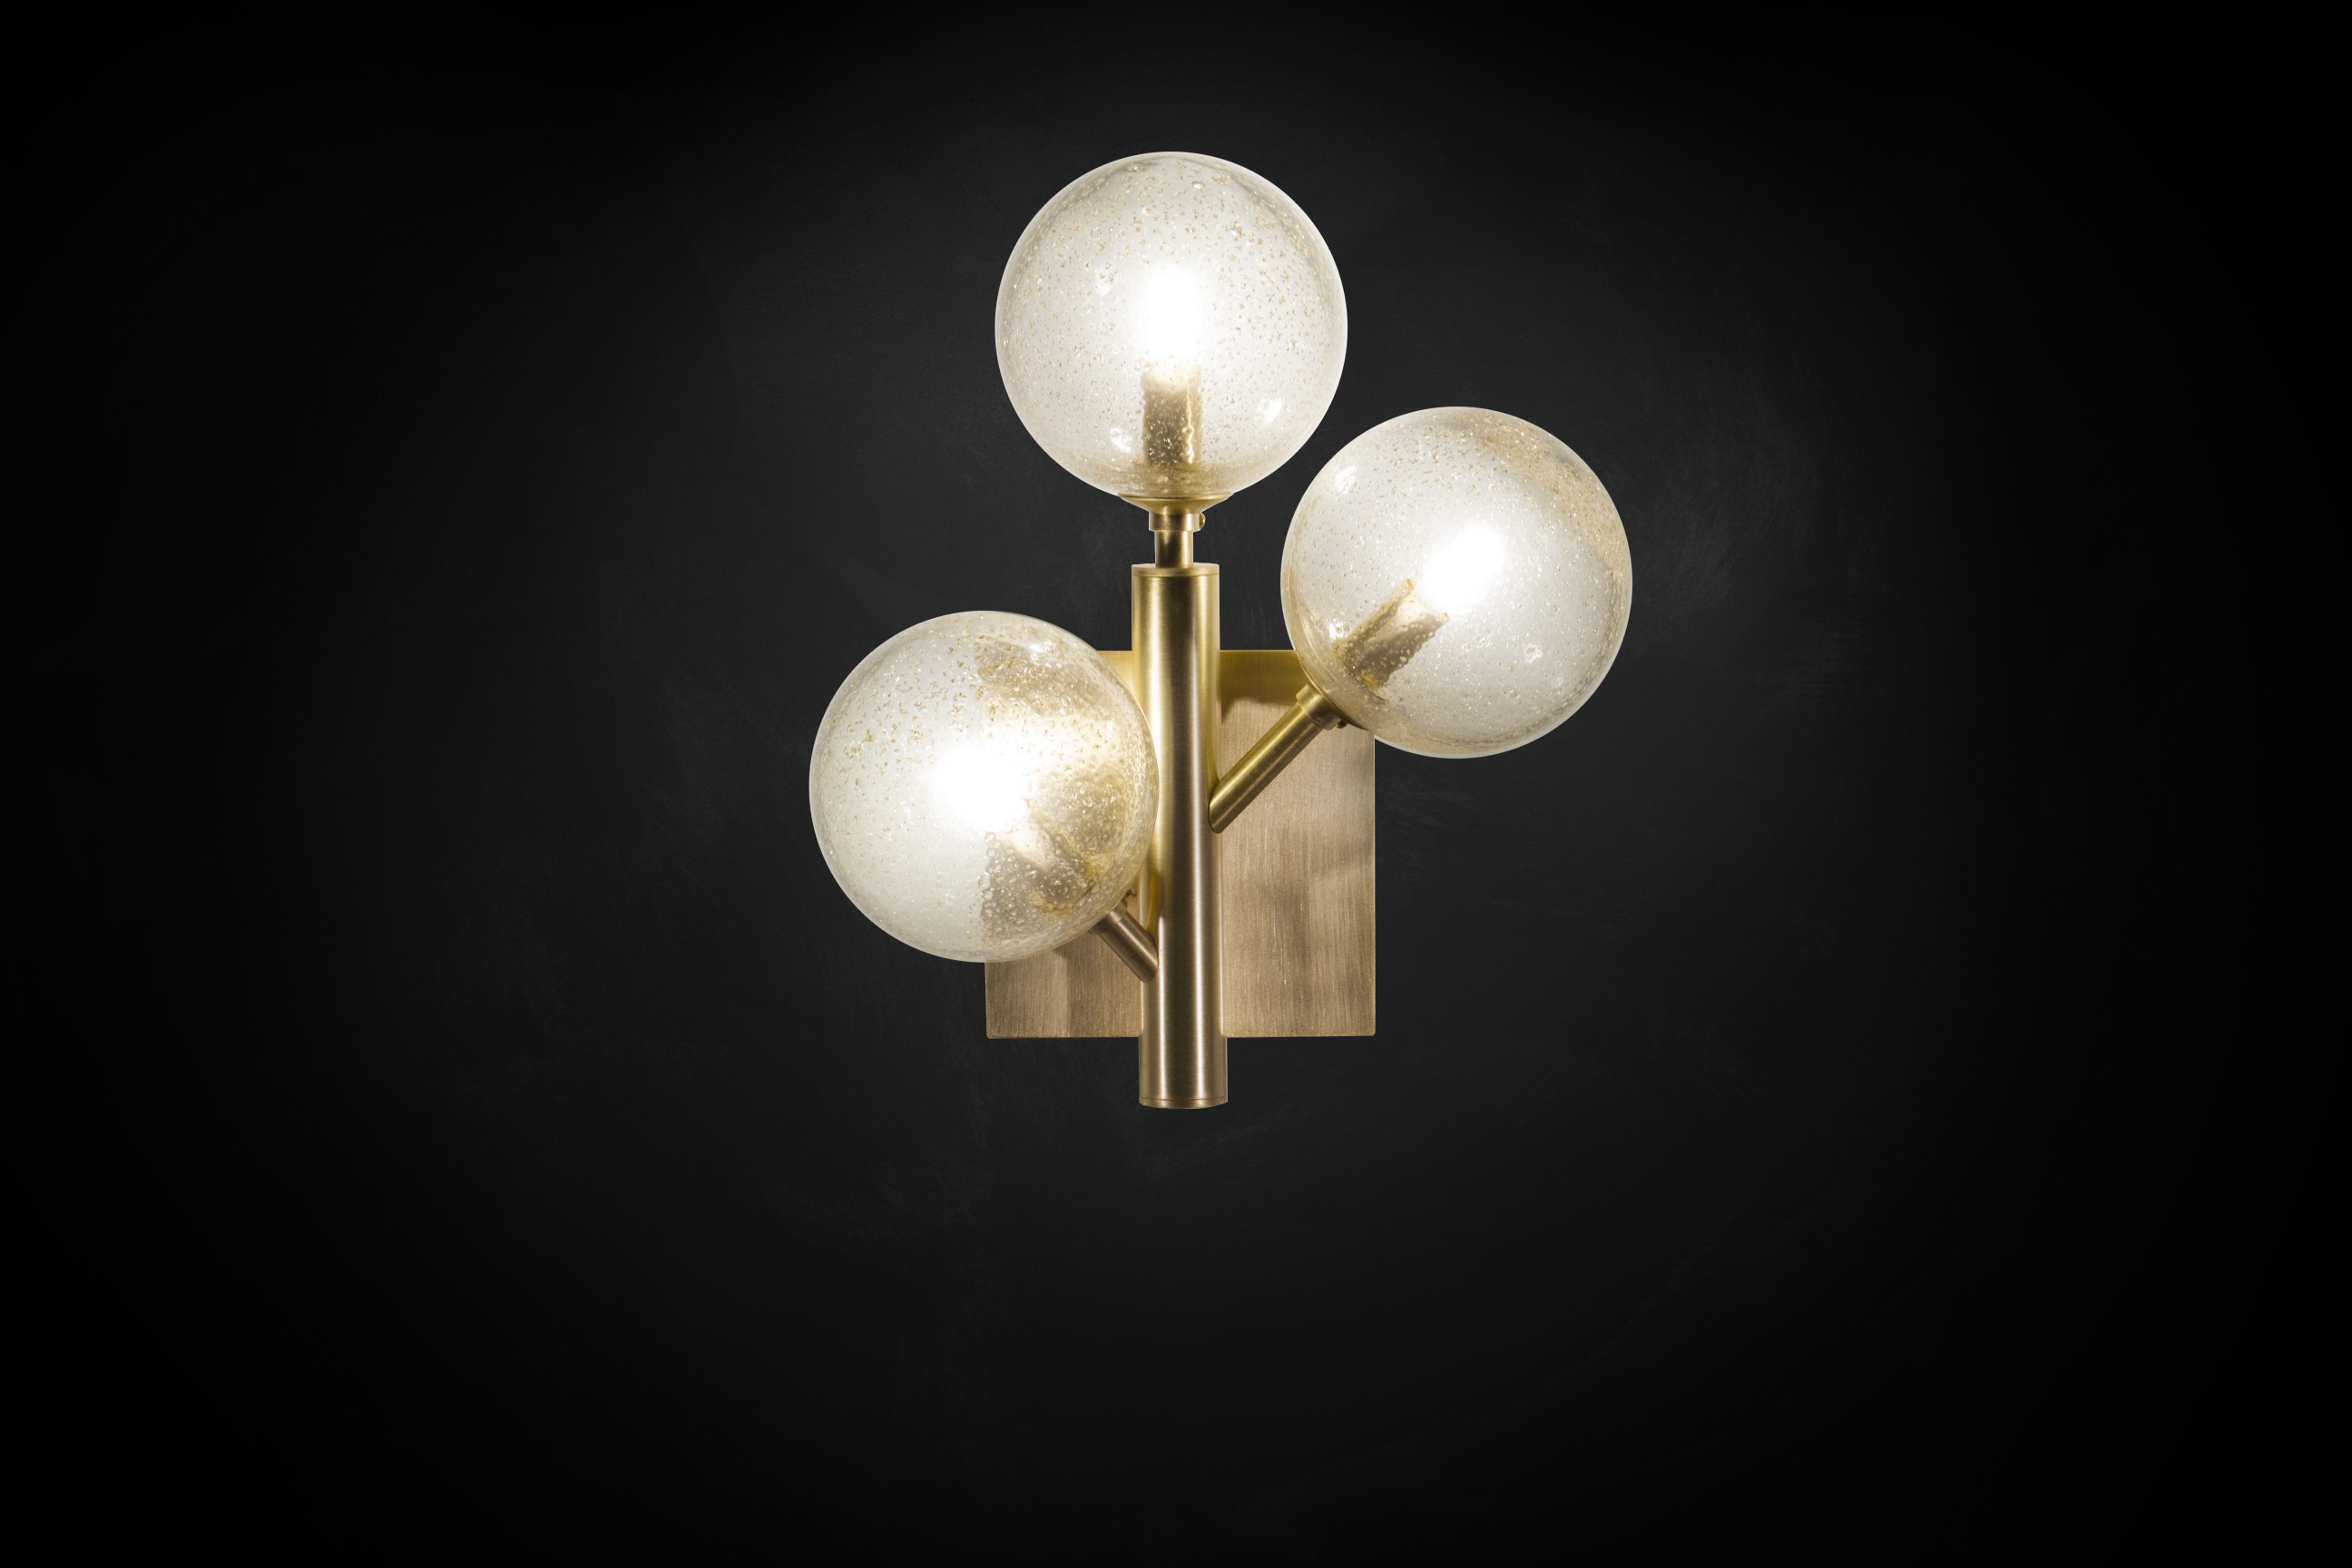 Mimosa Sconce 3 - <p>From our new collection, Mimosa Applique is a contemporary sconce equipped with 3 glass spheres. Each ball is realised by the antique technique of glass blowing. After the processing in the furnace, glass spheres are pierced to be assembled with the frame and the light bulb E27 inside each ball. Available in more colours of frame and glass.</p>  | Matter of Stuff